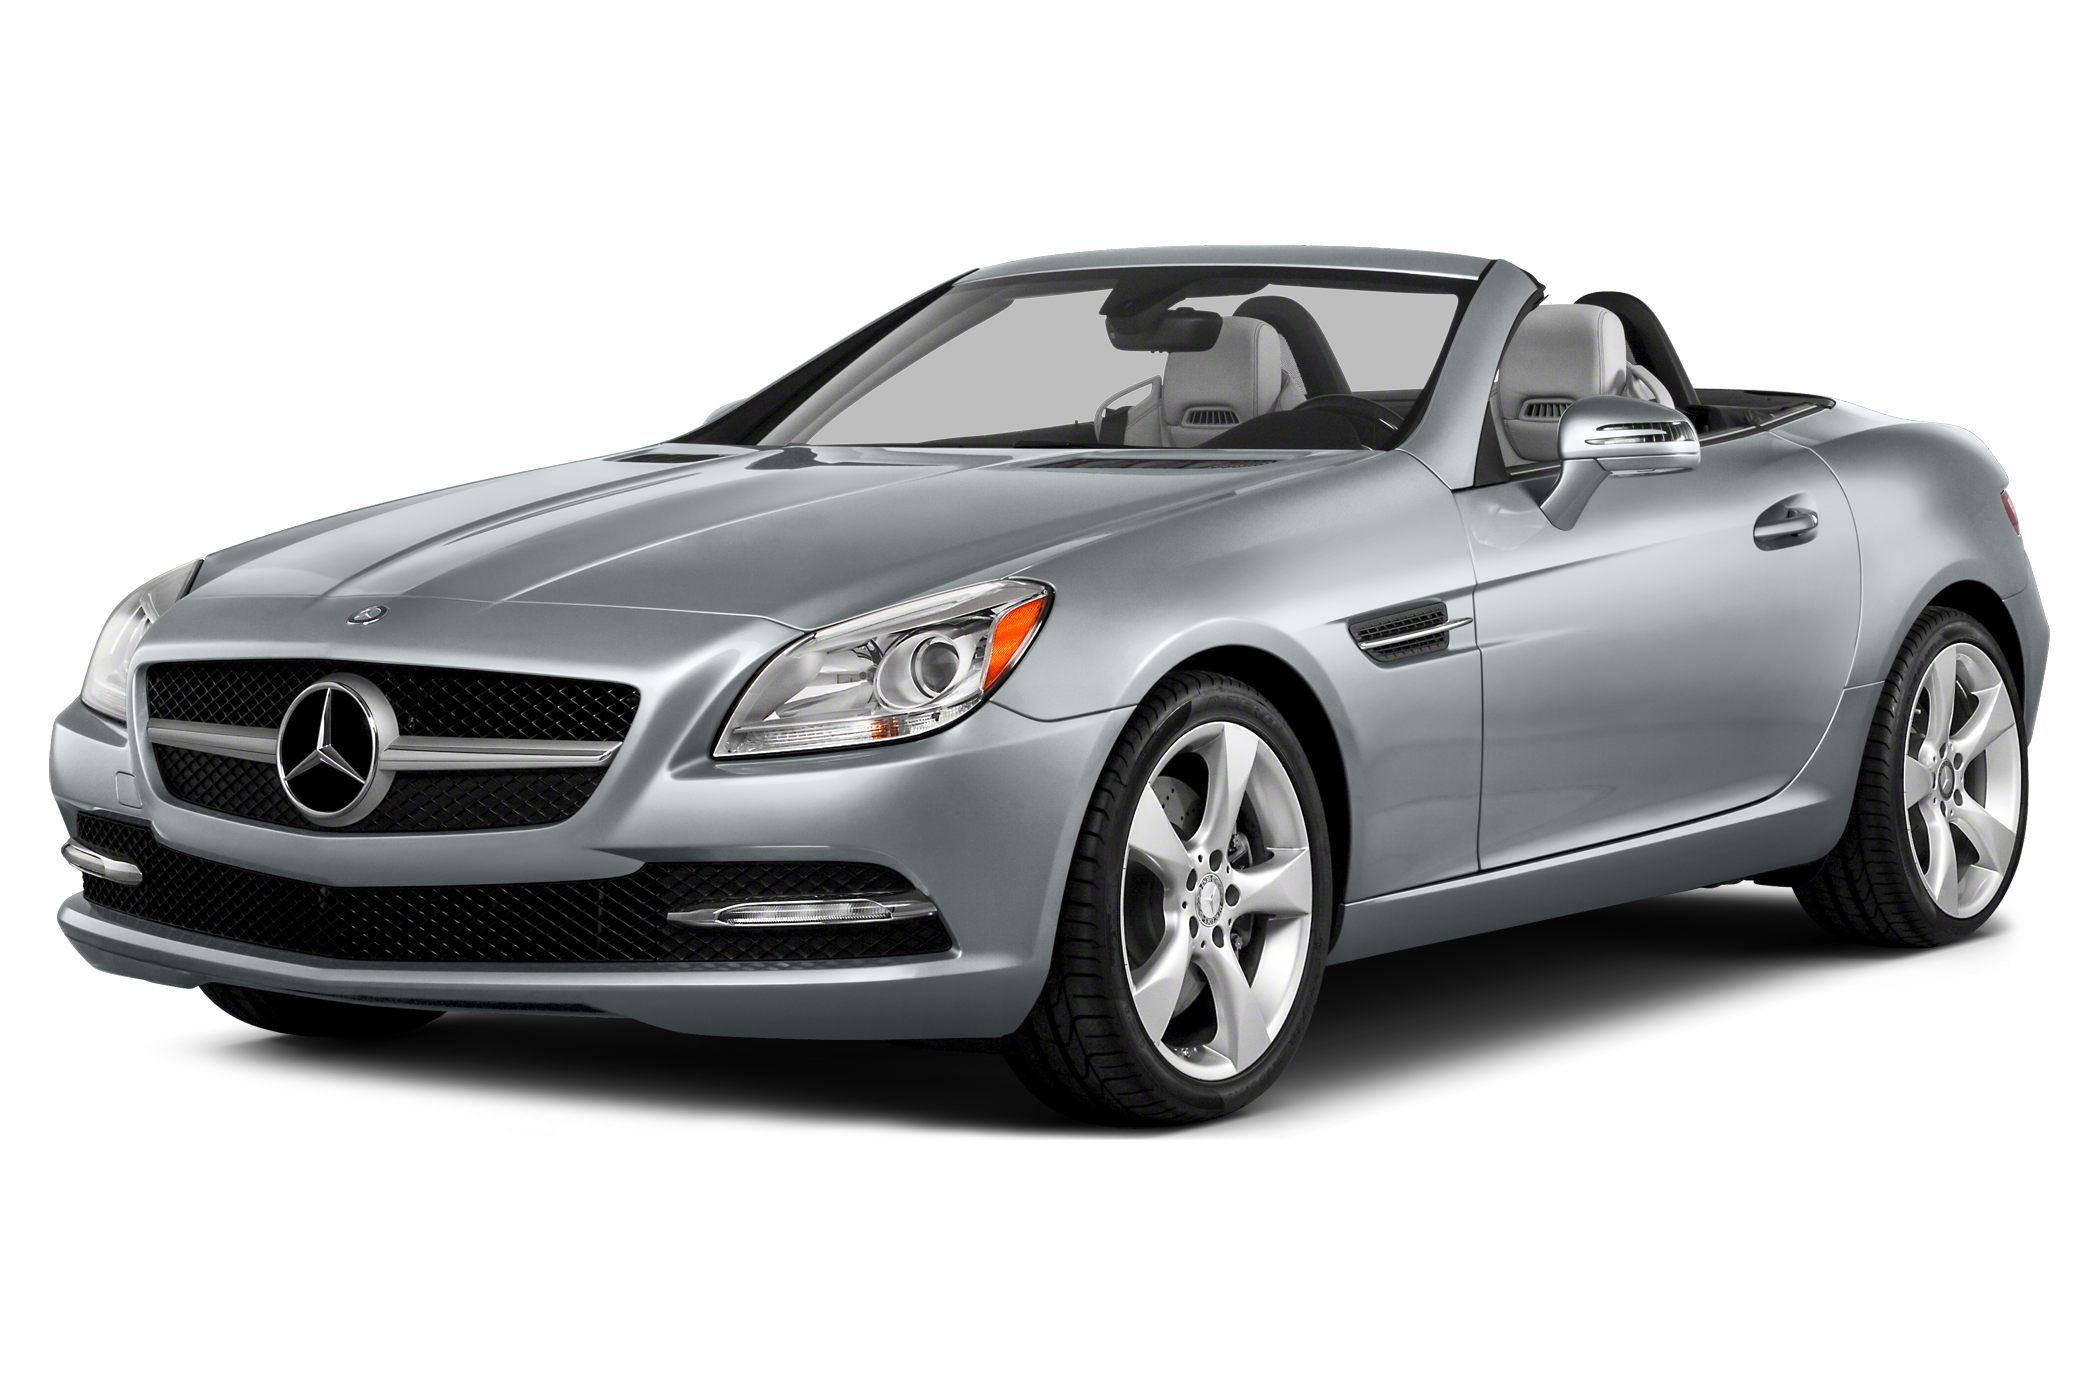 Get The Best Cheap Prices For Luxury Car Rental Dubai With A Large Selection Of Luxury Cars And Locations Mercedes Benz Slk Mercedes Benz Luxury Car Rental